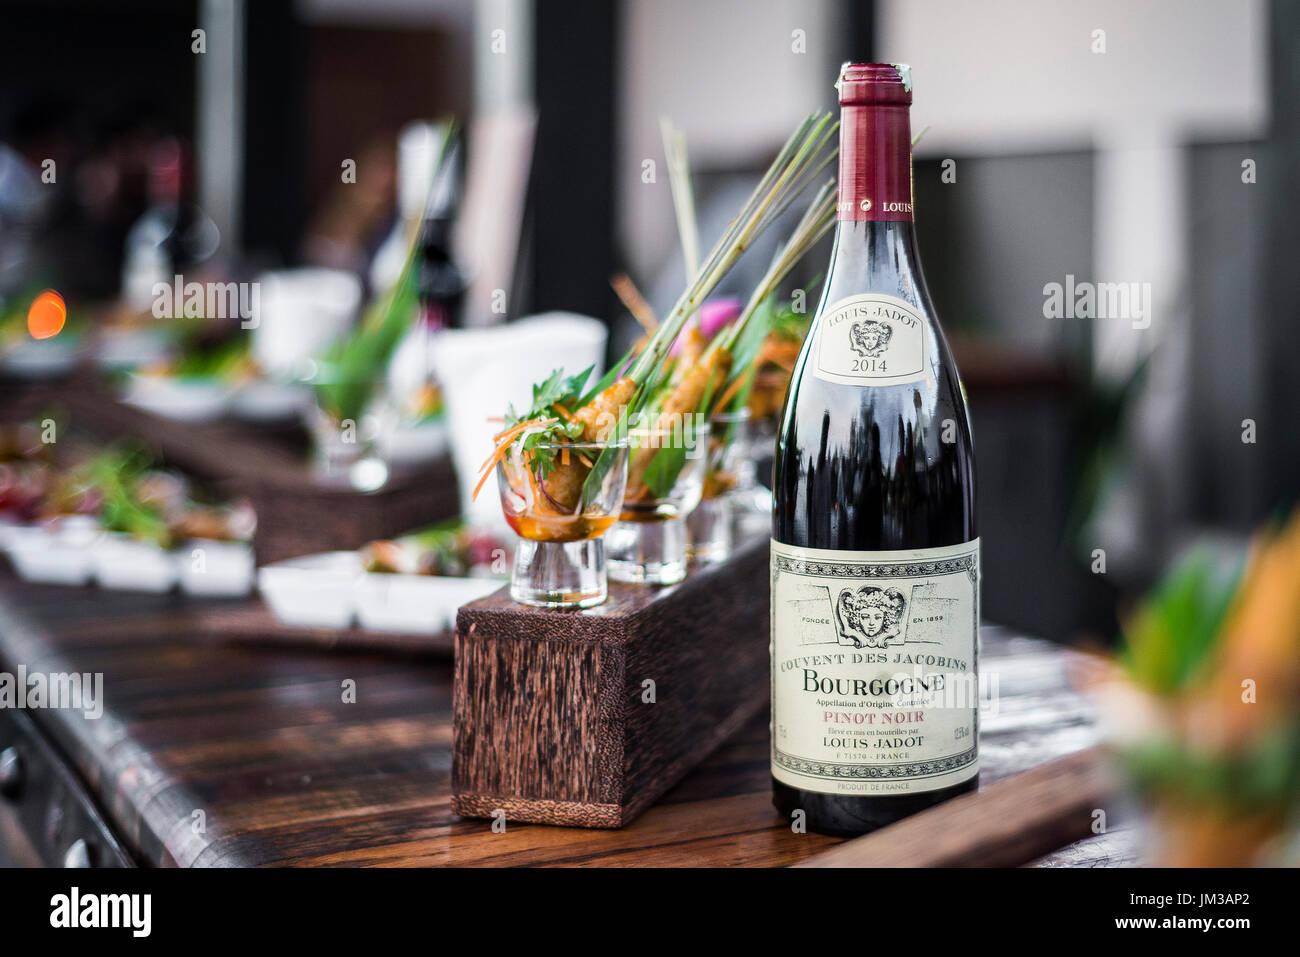 bottle of red bourgogne wine at oudoor party bar counter - Stock Image